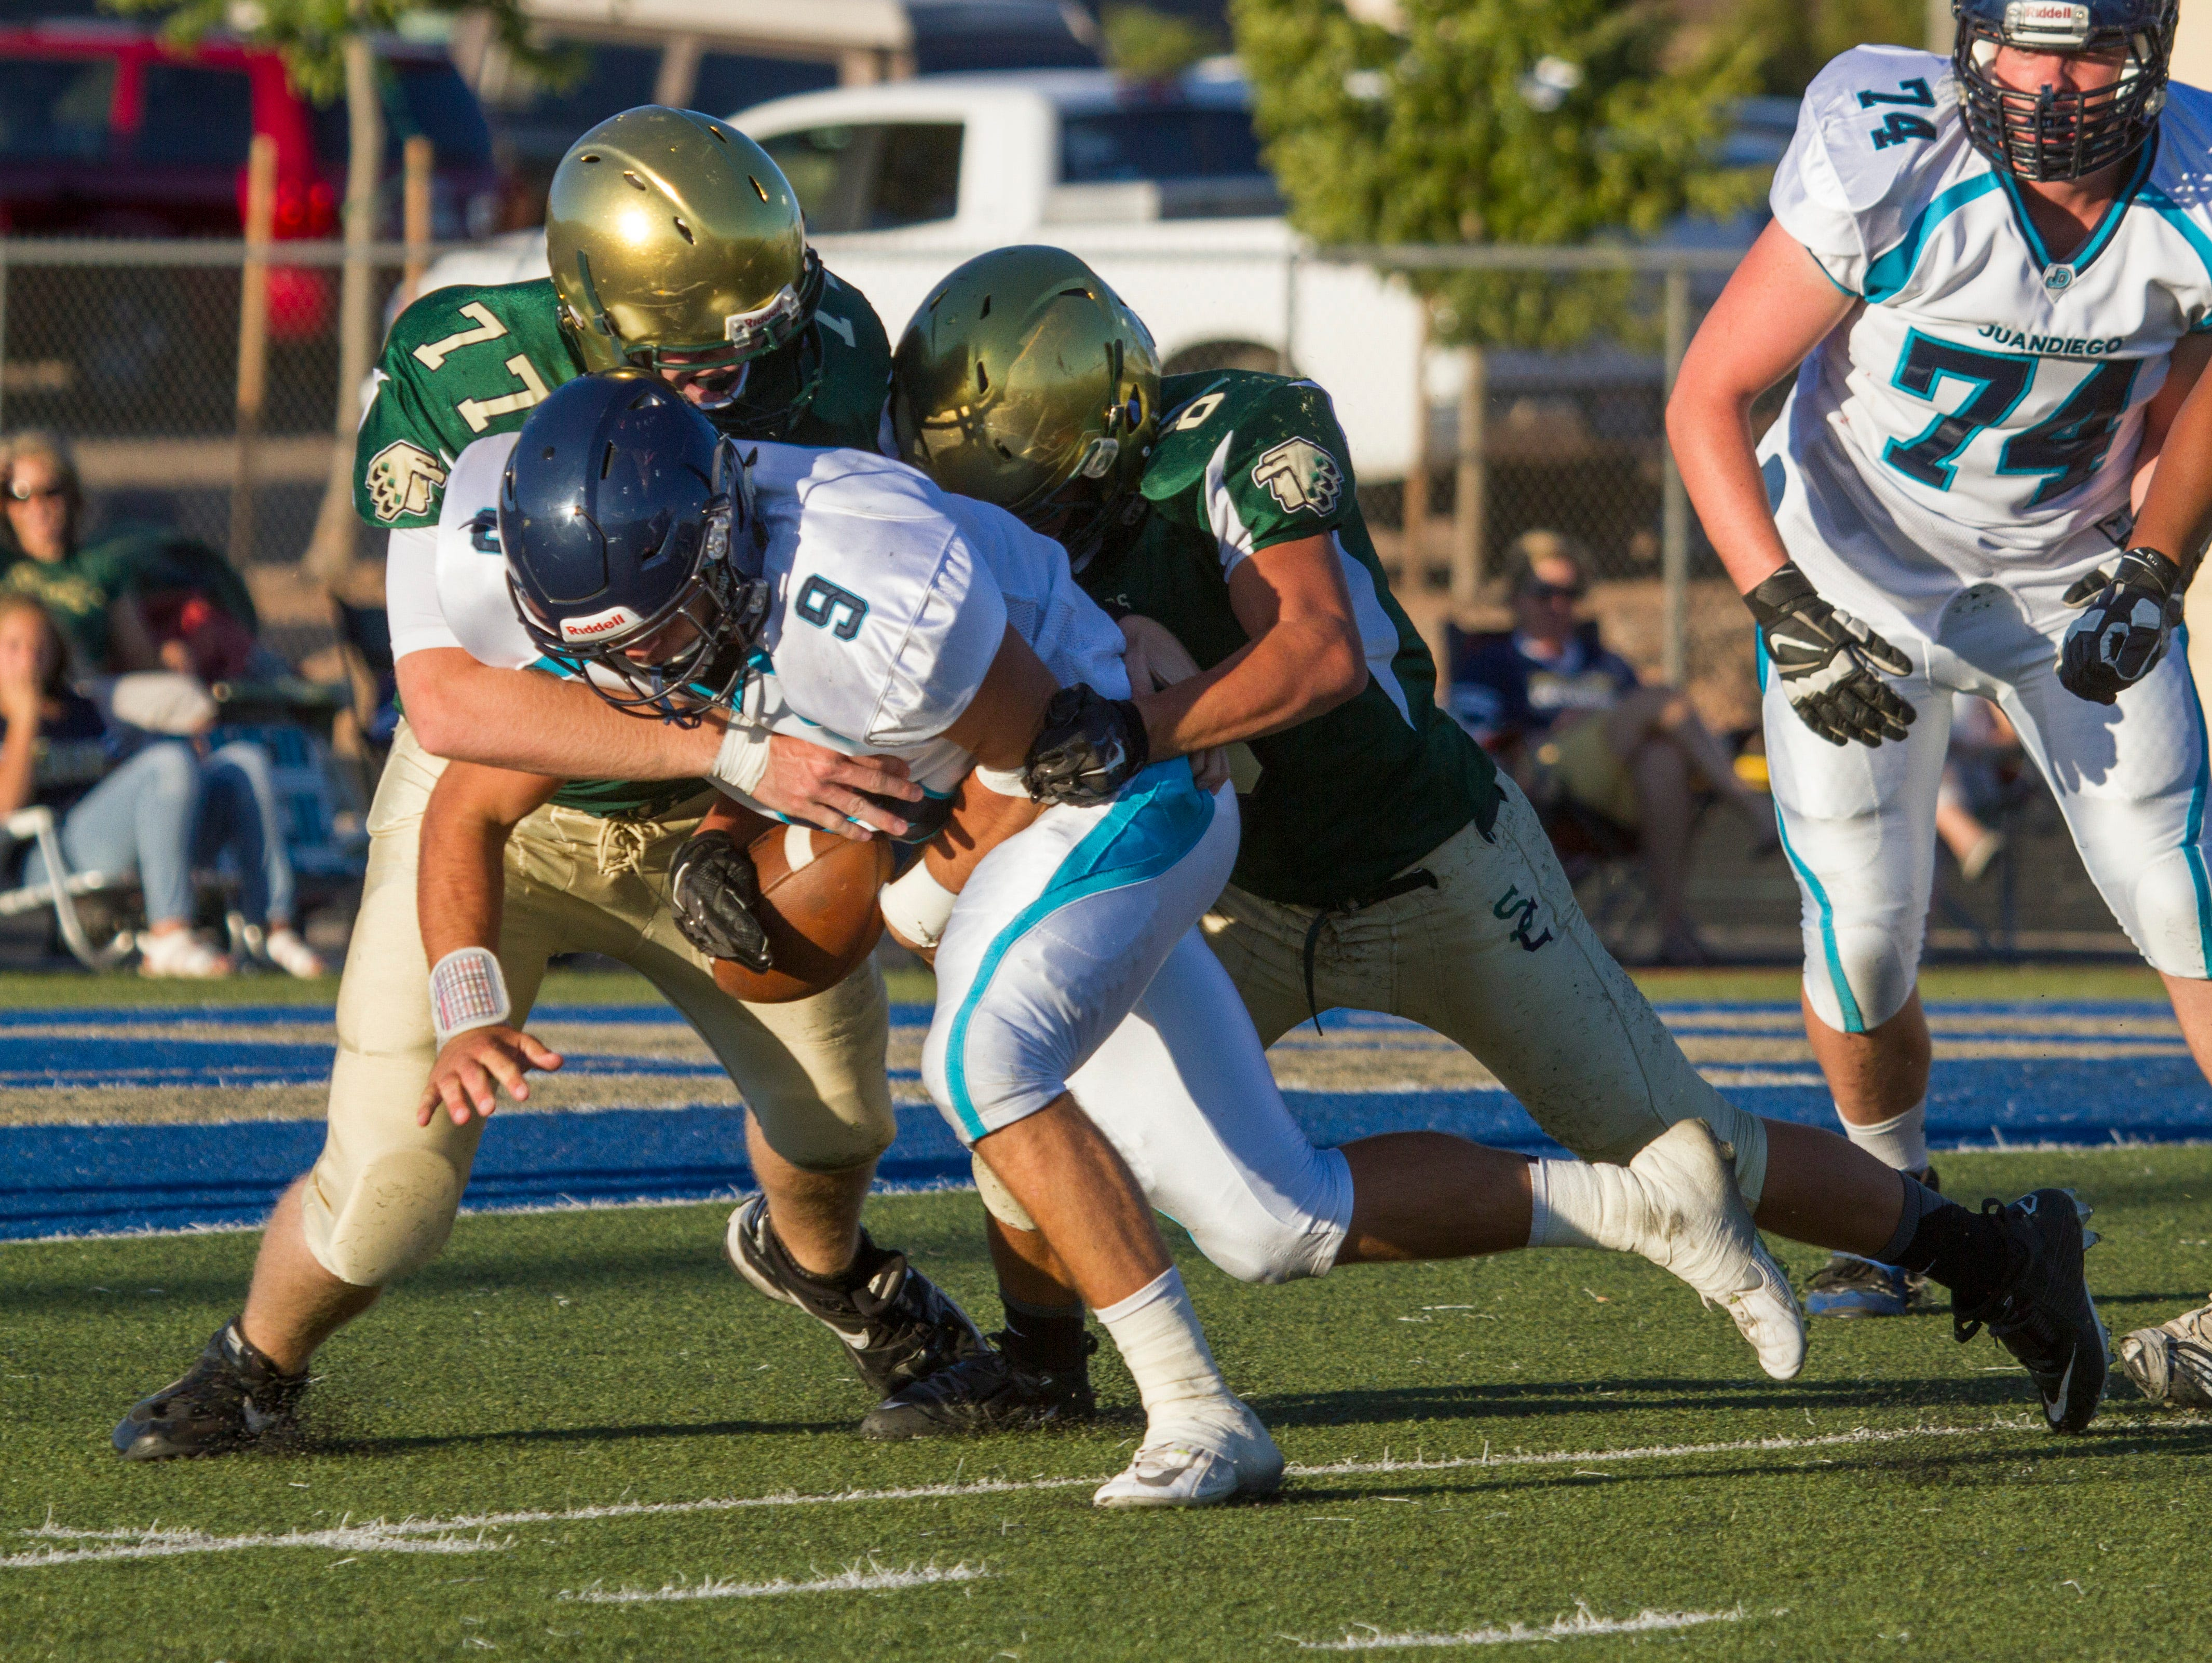 Snow Canyon High hosts Juan Diego for their season-opening game Friday, Sept. 4, 2015.